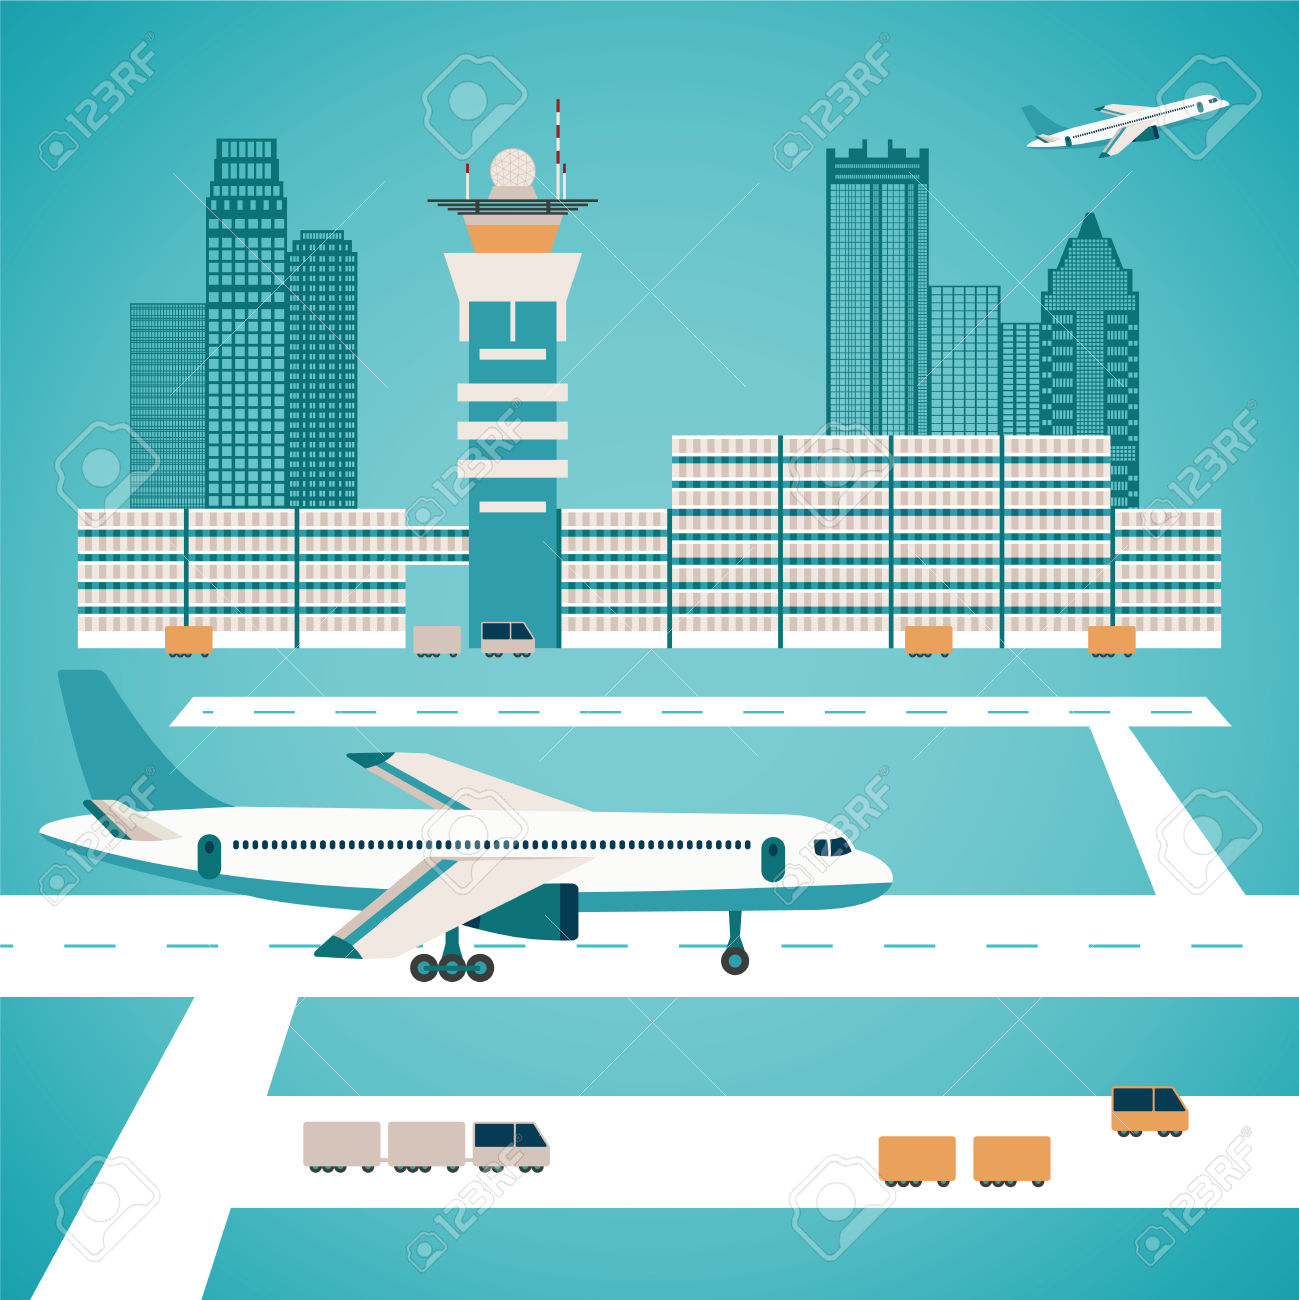 Airport clipart illustration. Building pencil and in